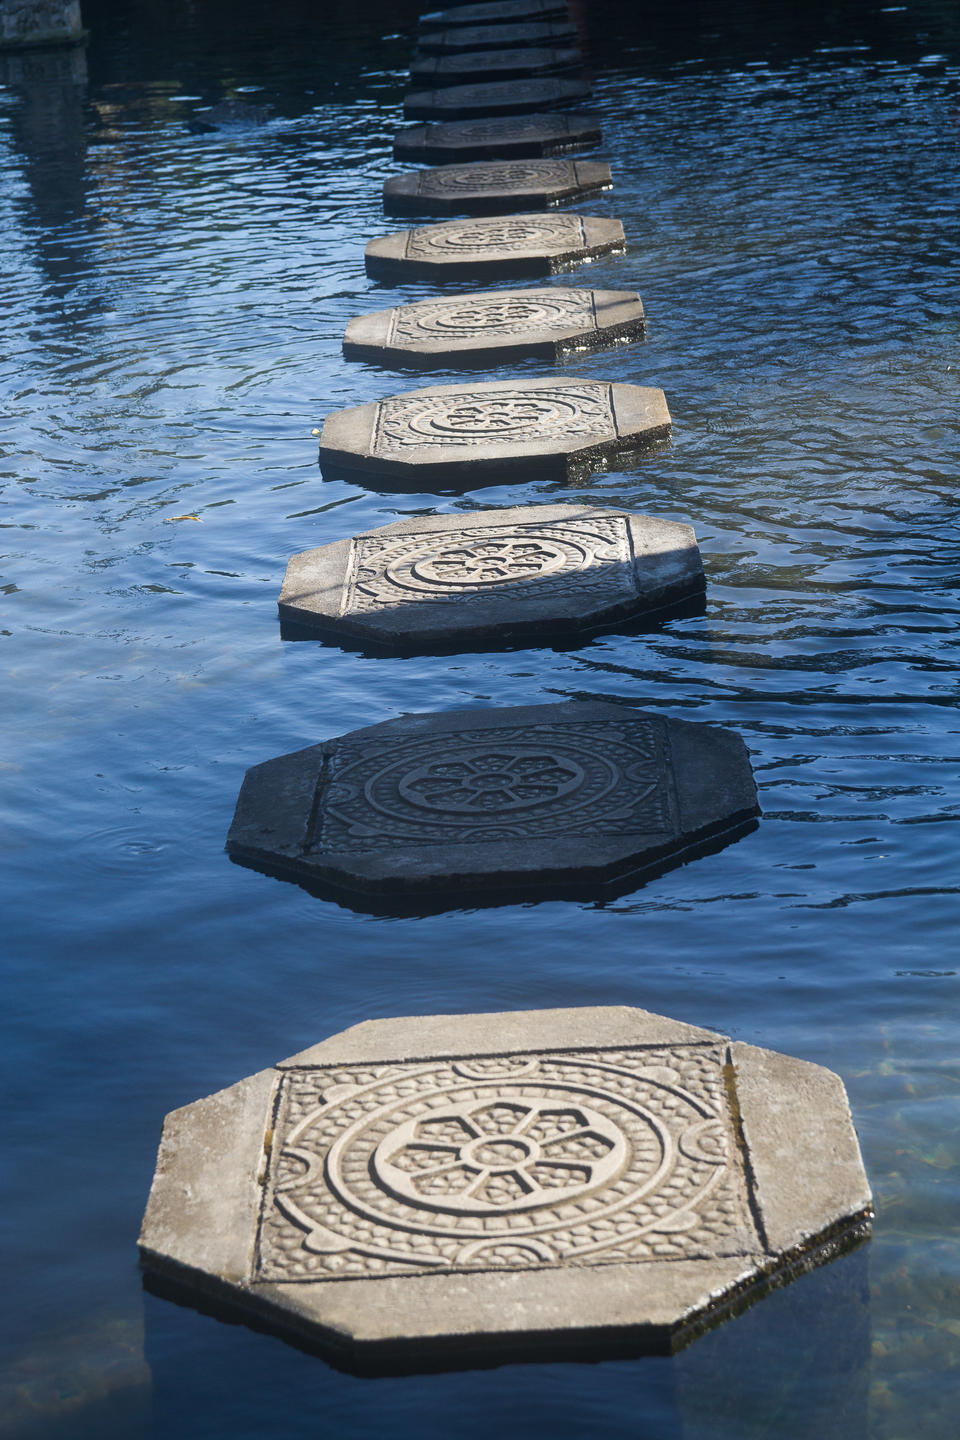 Balinese stepping stones across a pond